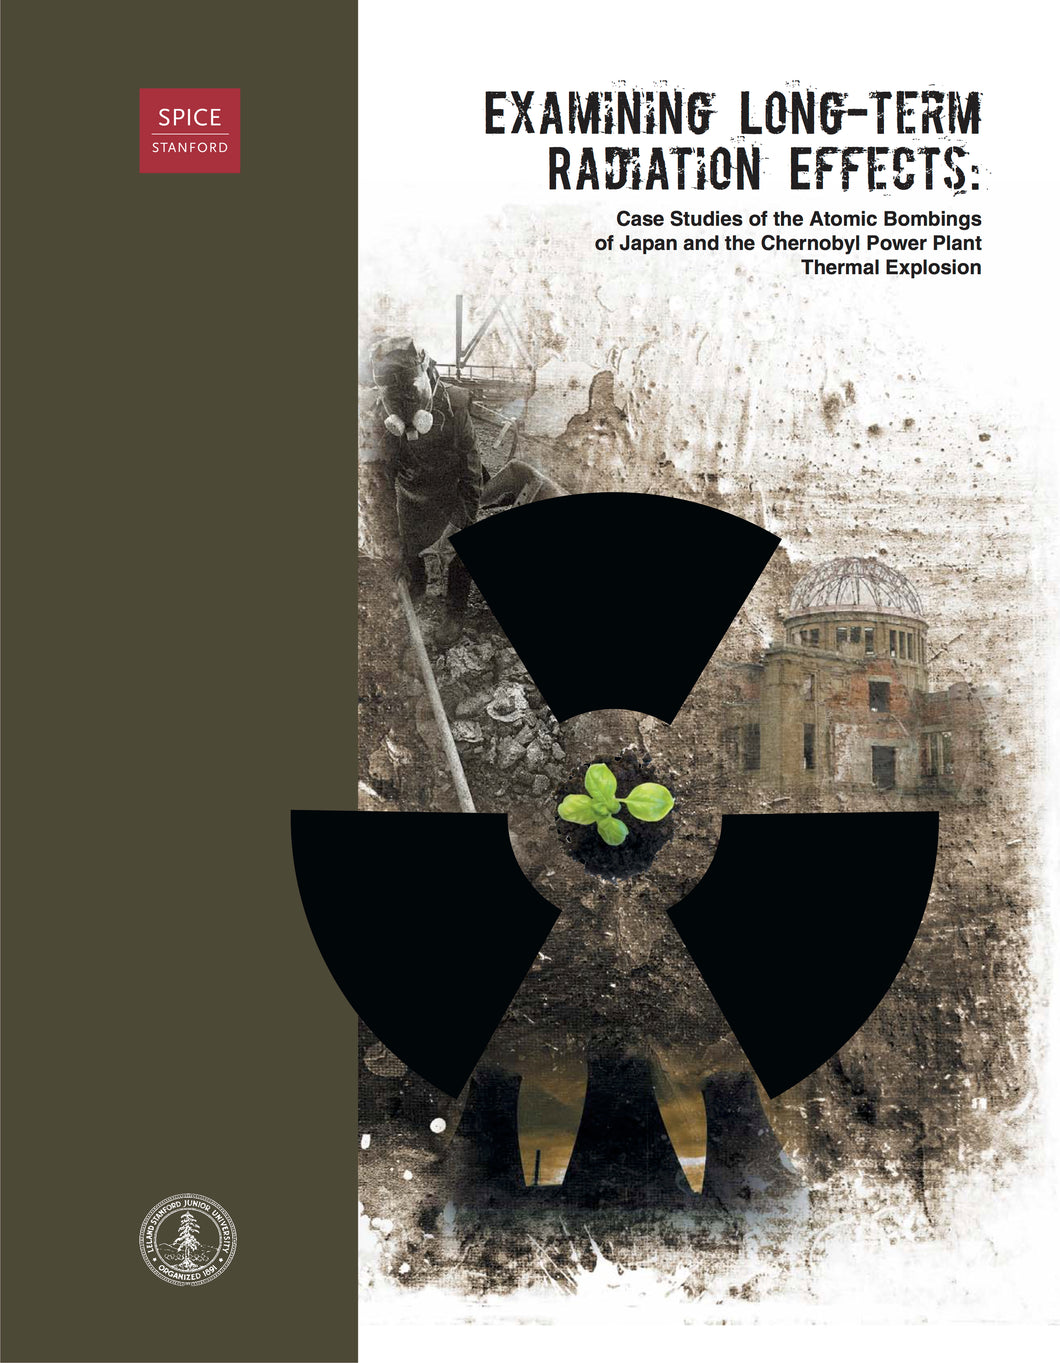 Examining Long-term Radiation Effects: Case Studies of the Atomic Bombings of Japan and the Chernobyl Power Plant Thermal Explosion